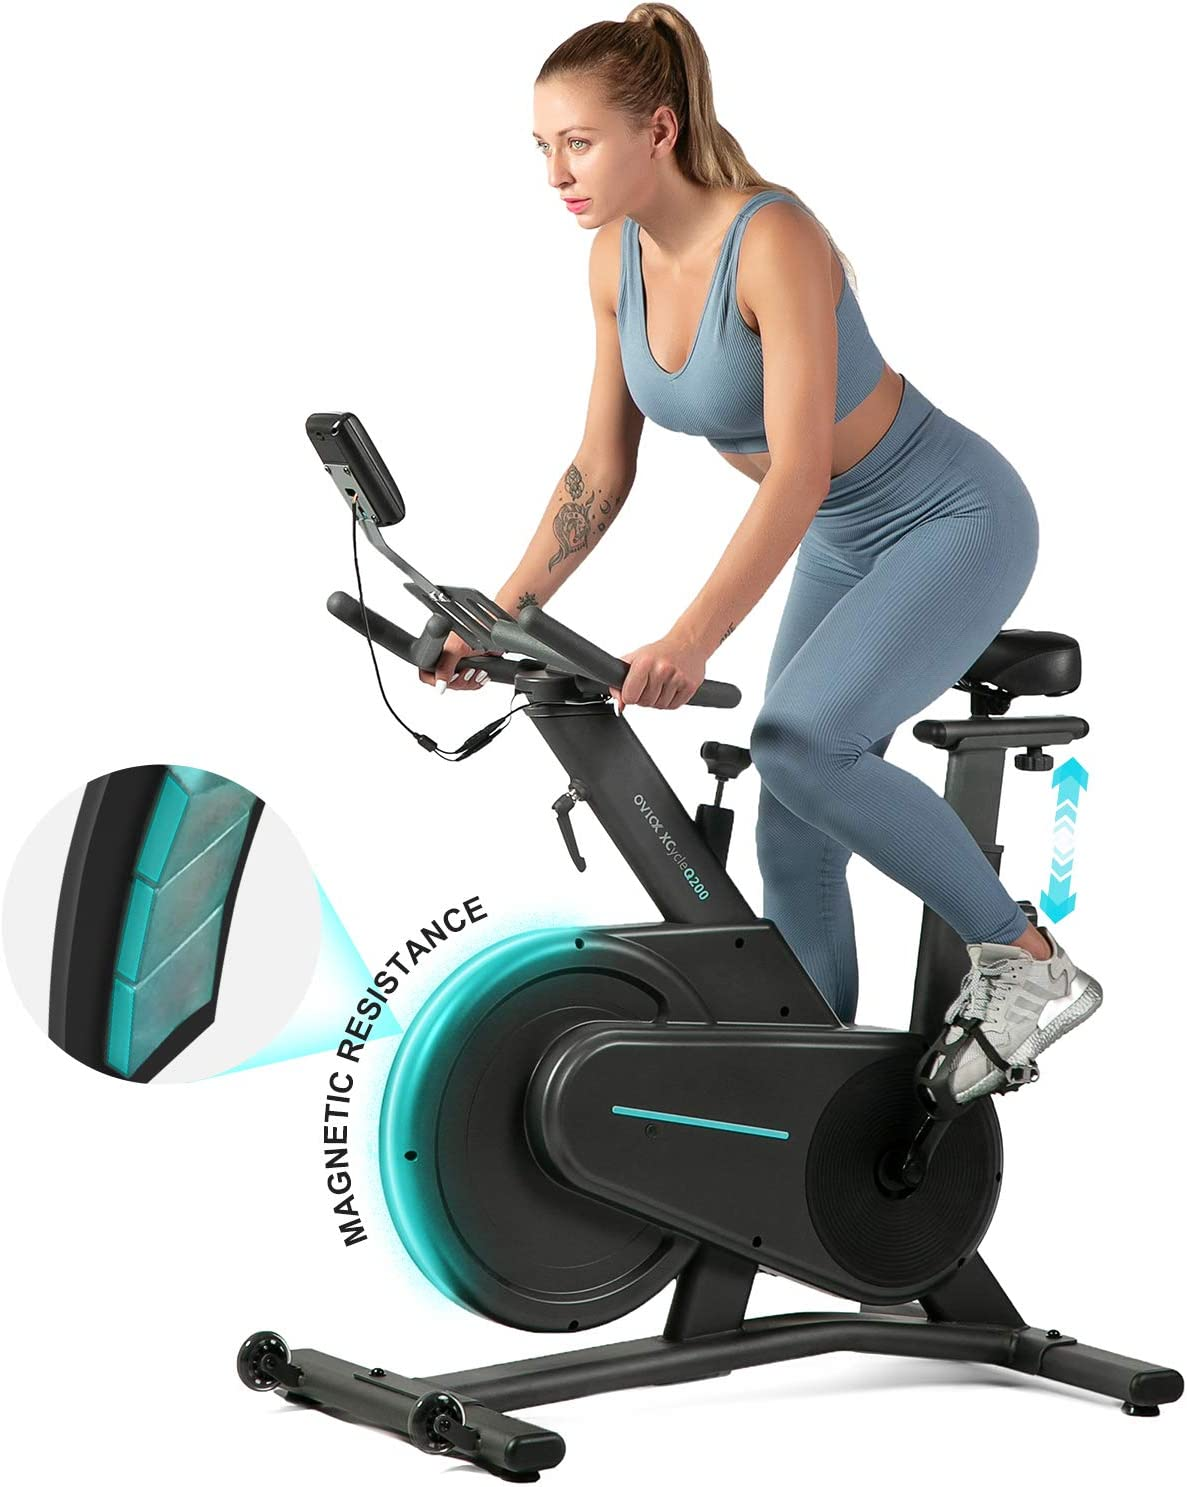 OVICX Magnetic Stationary Bike